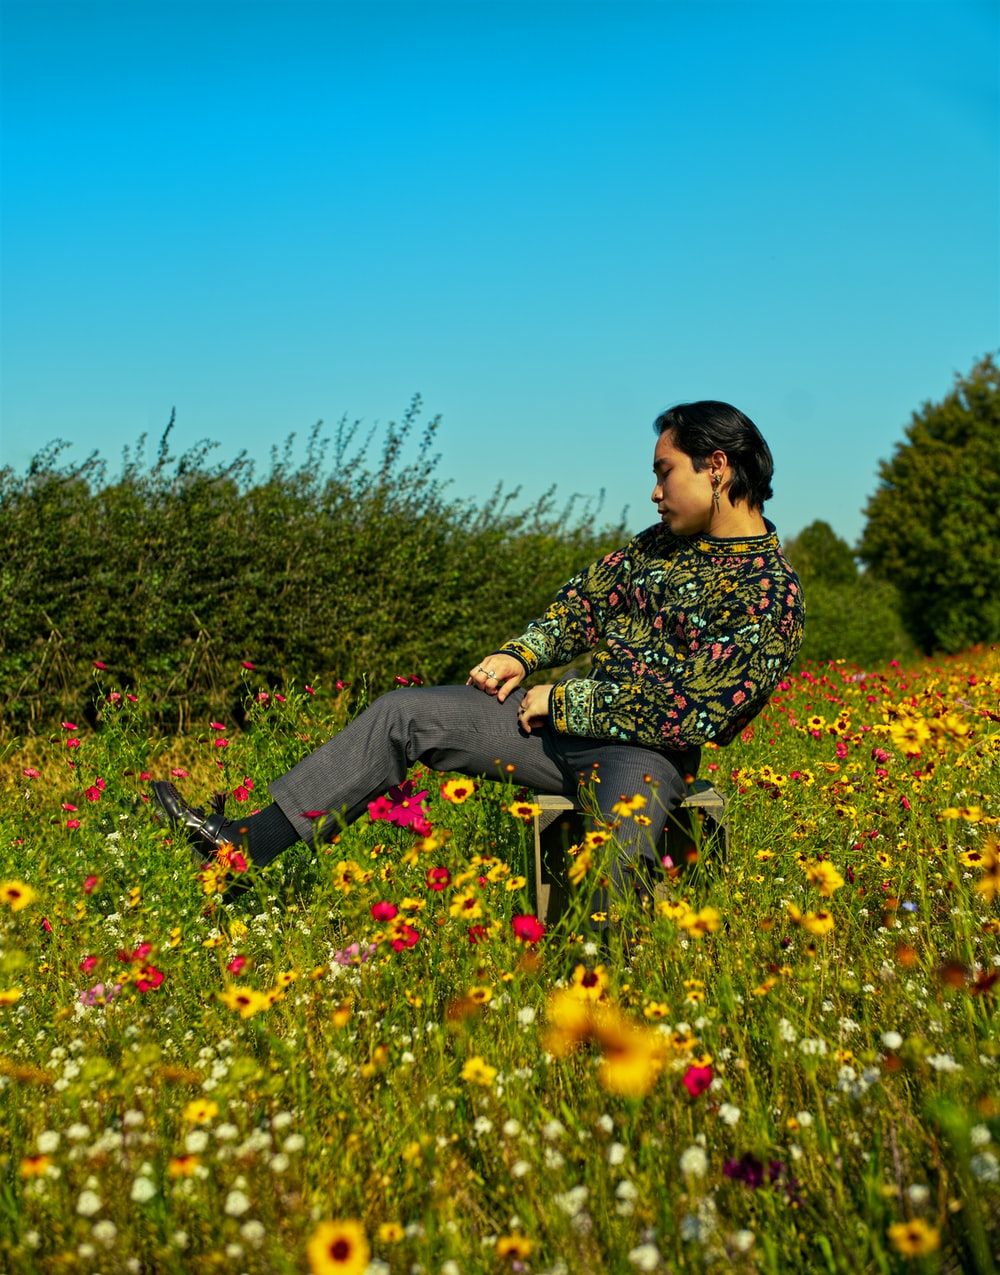 man in black and white floral long sleeve shirt sitting on yellow flower field during daytime